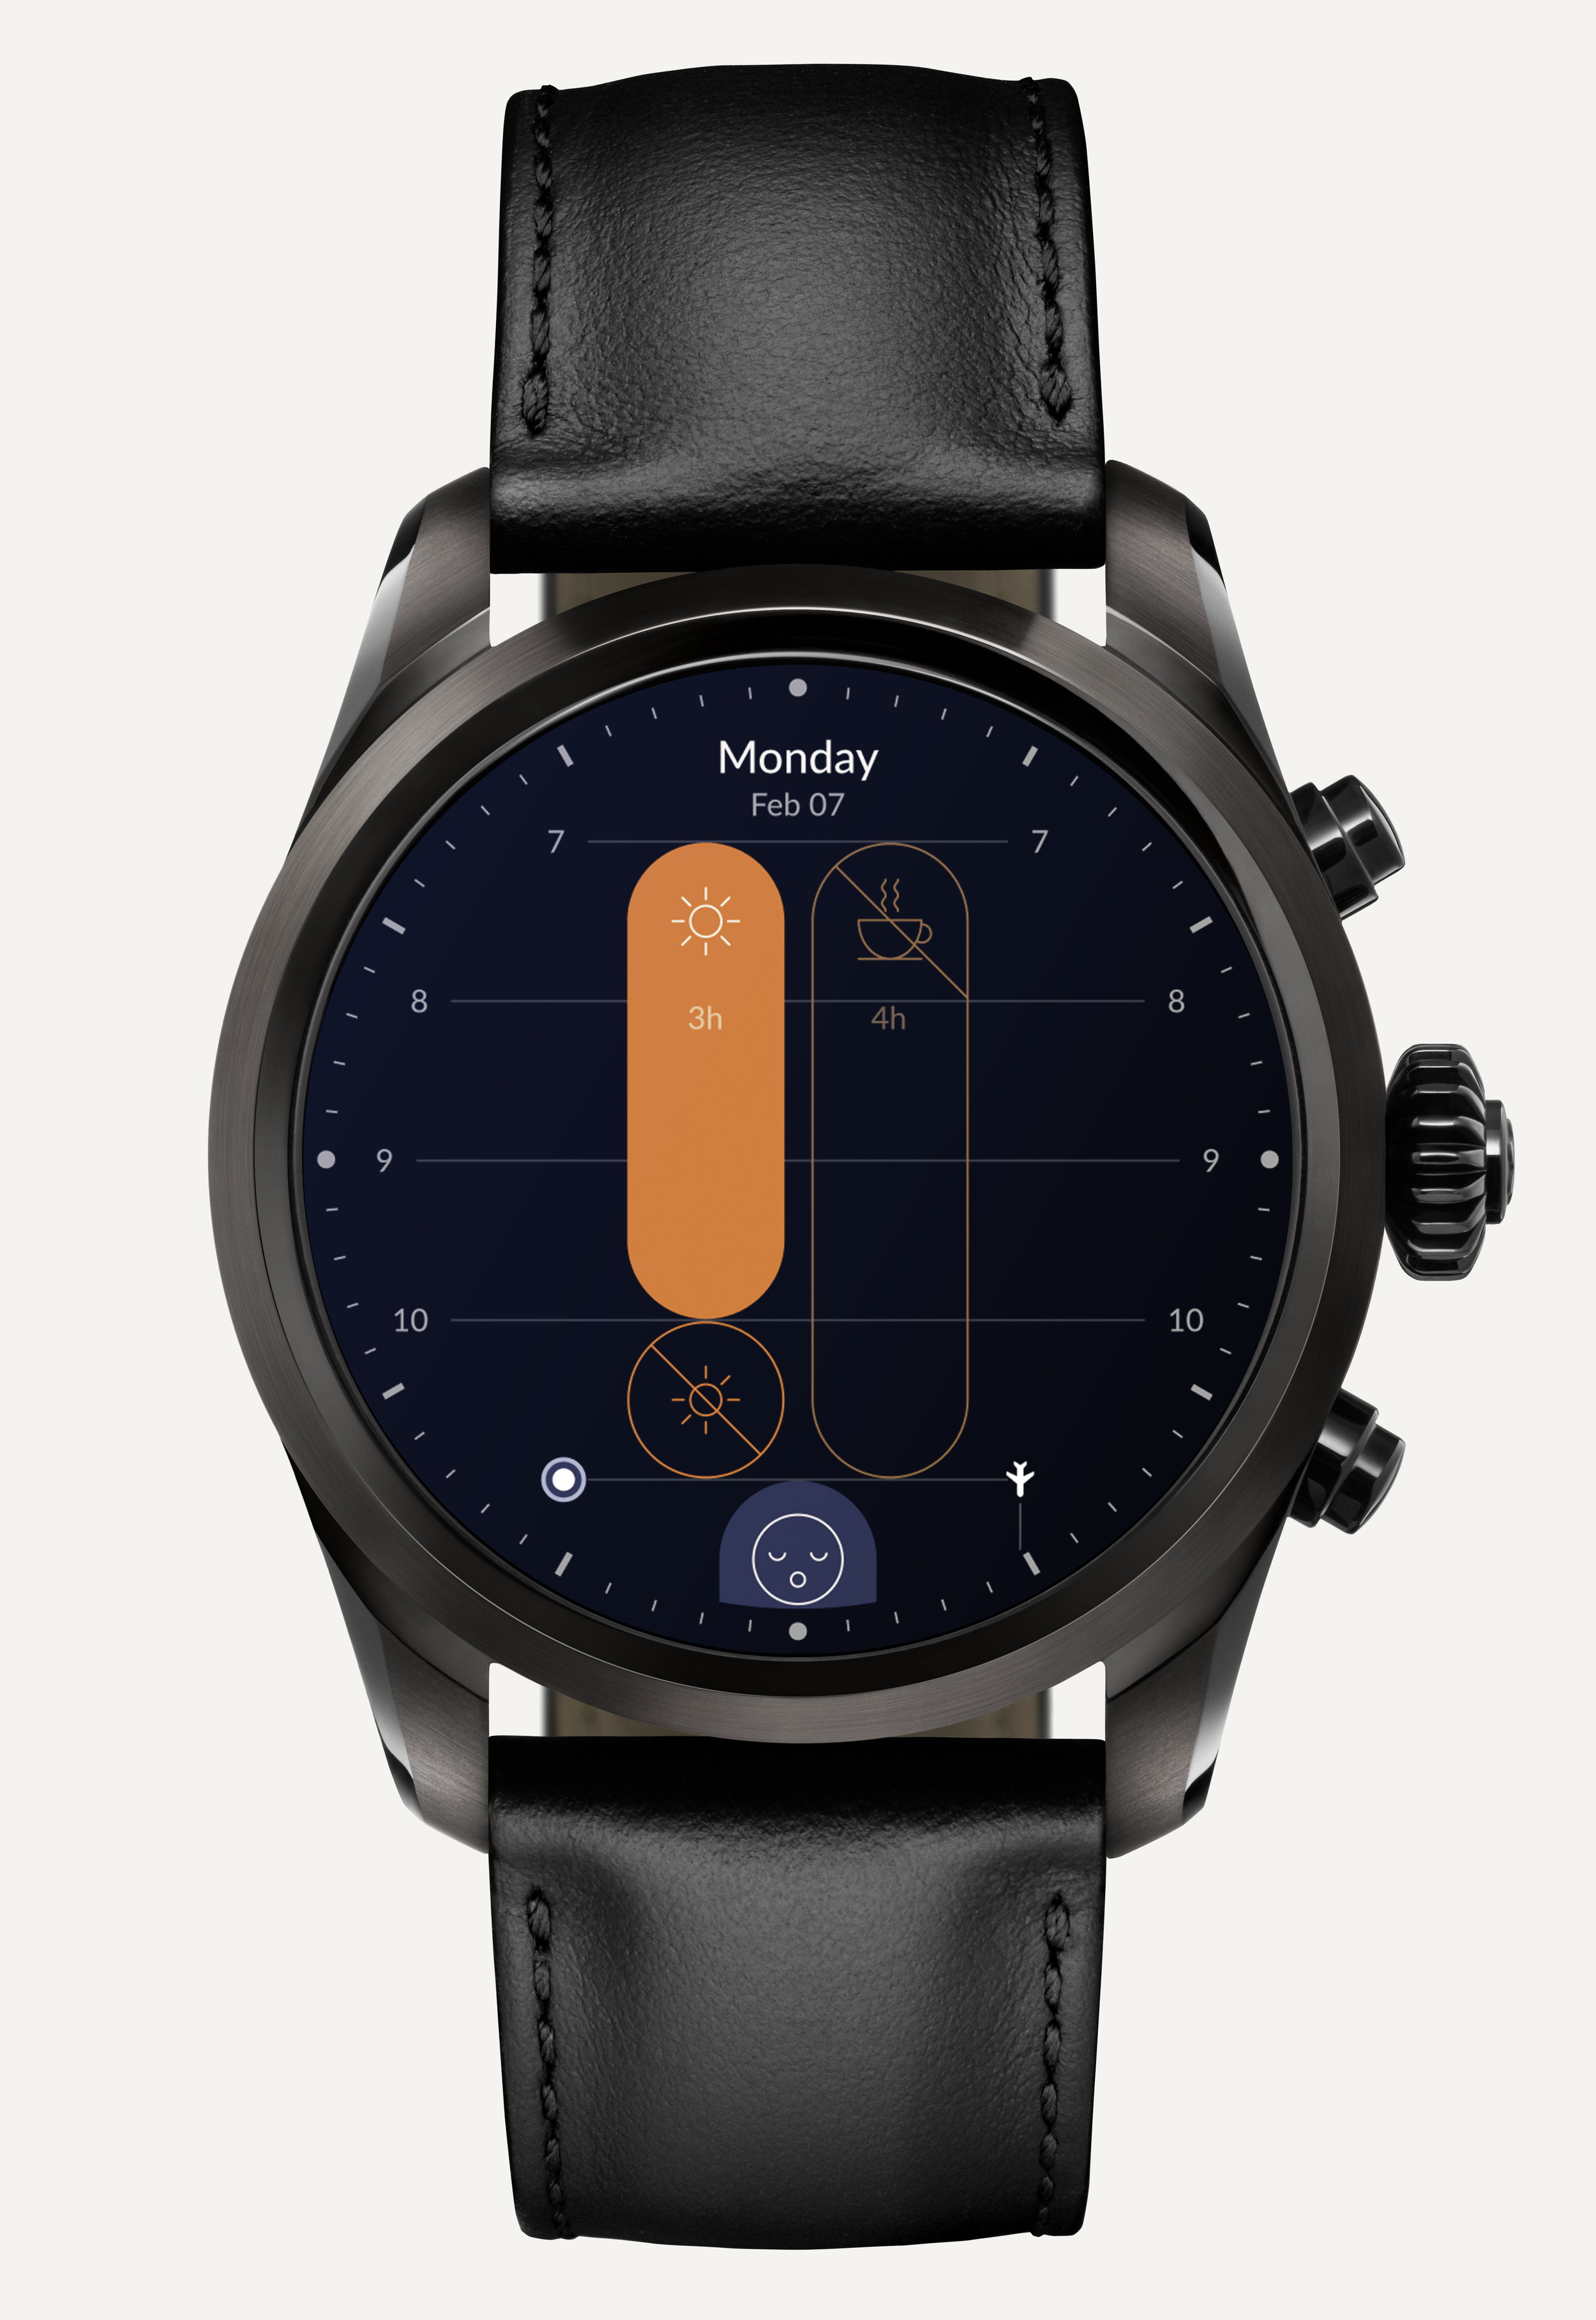 The Timeshifter jet lag app on Montblanc Summit 2 with Wear OS by Google